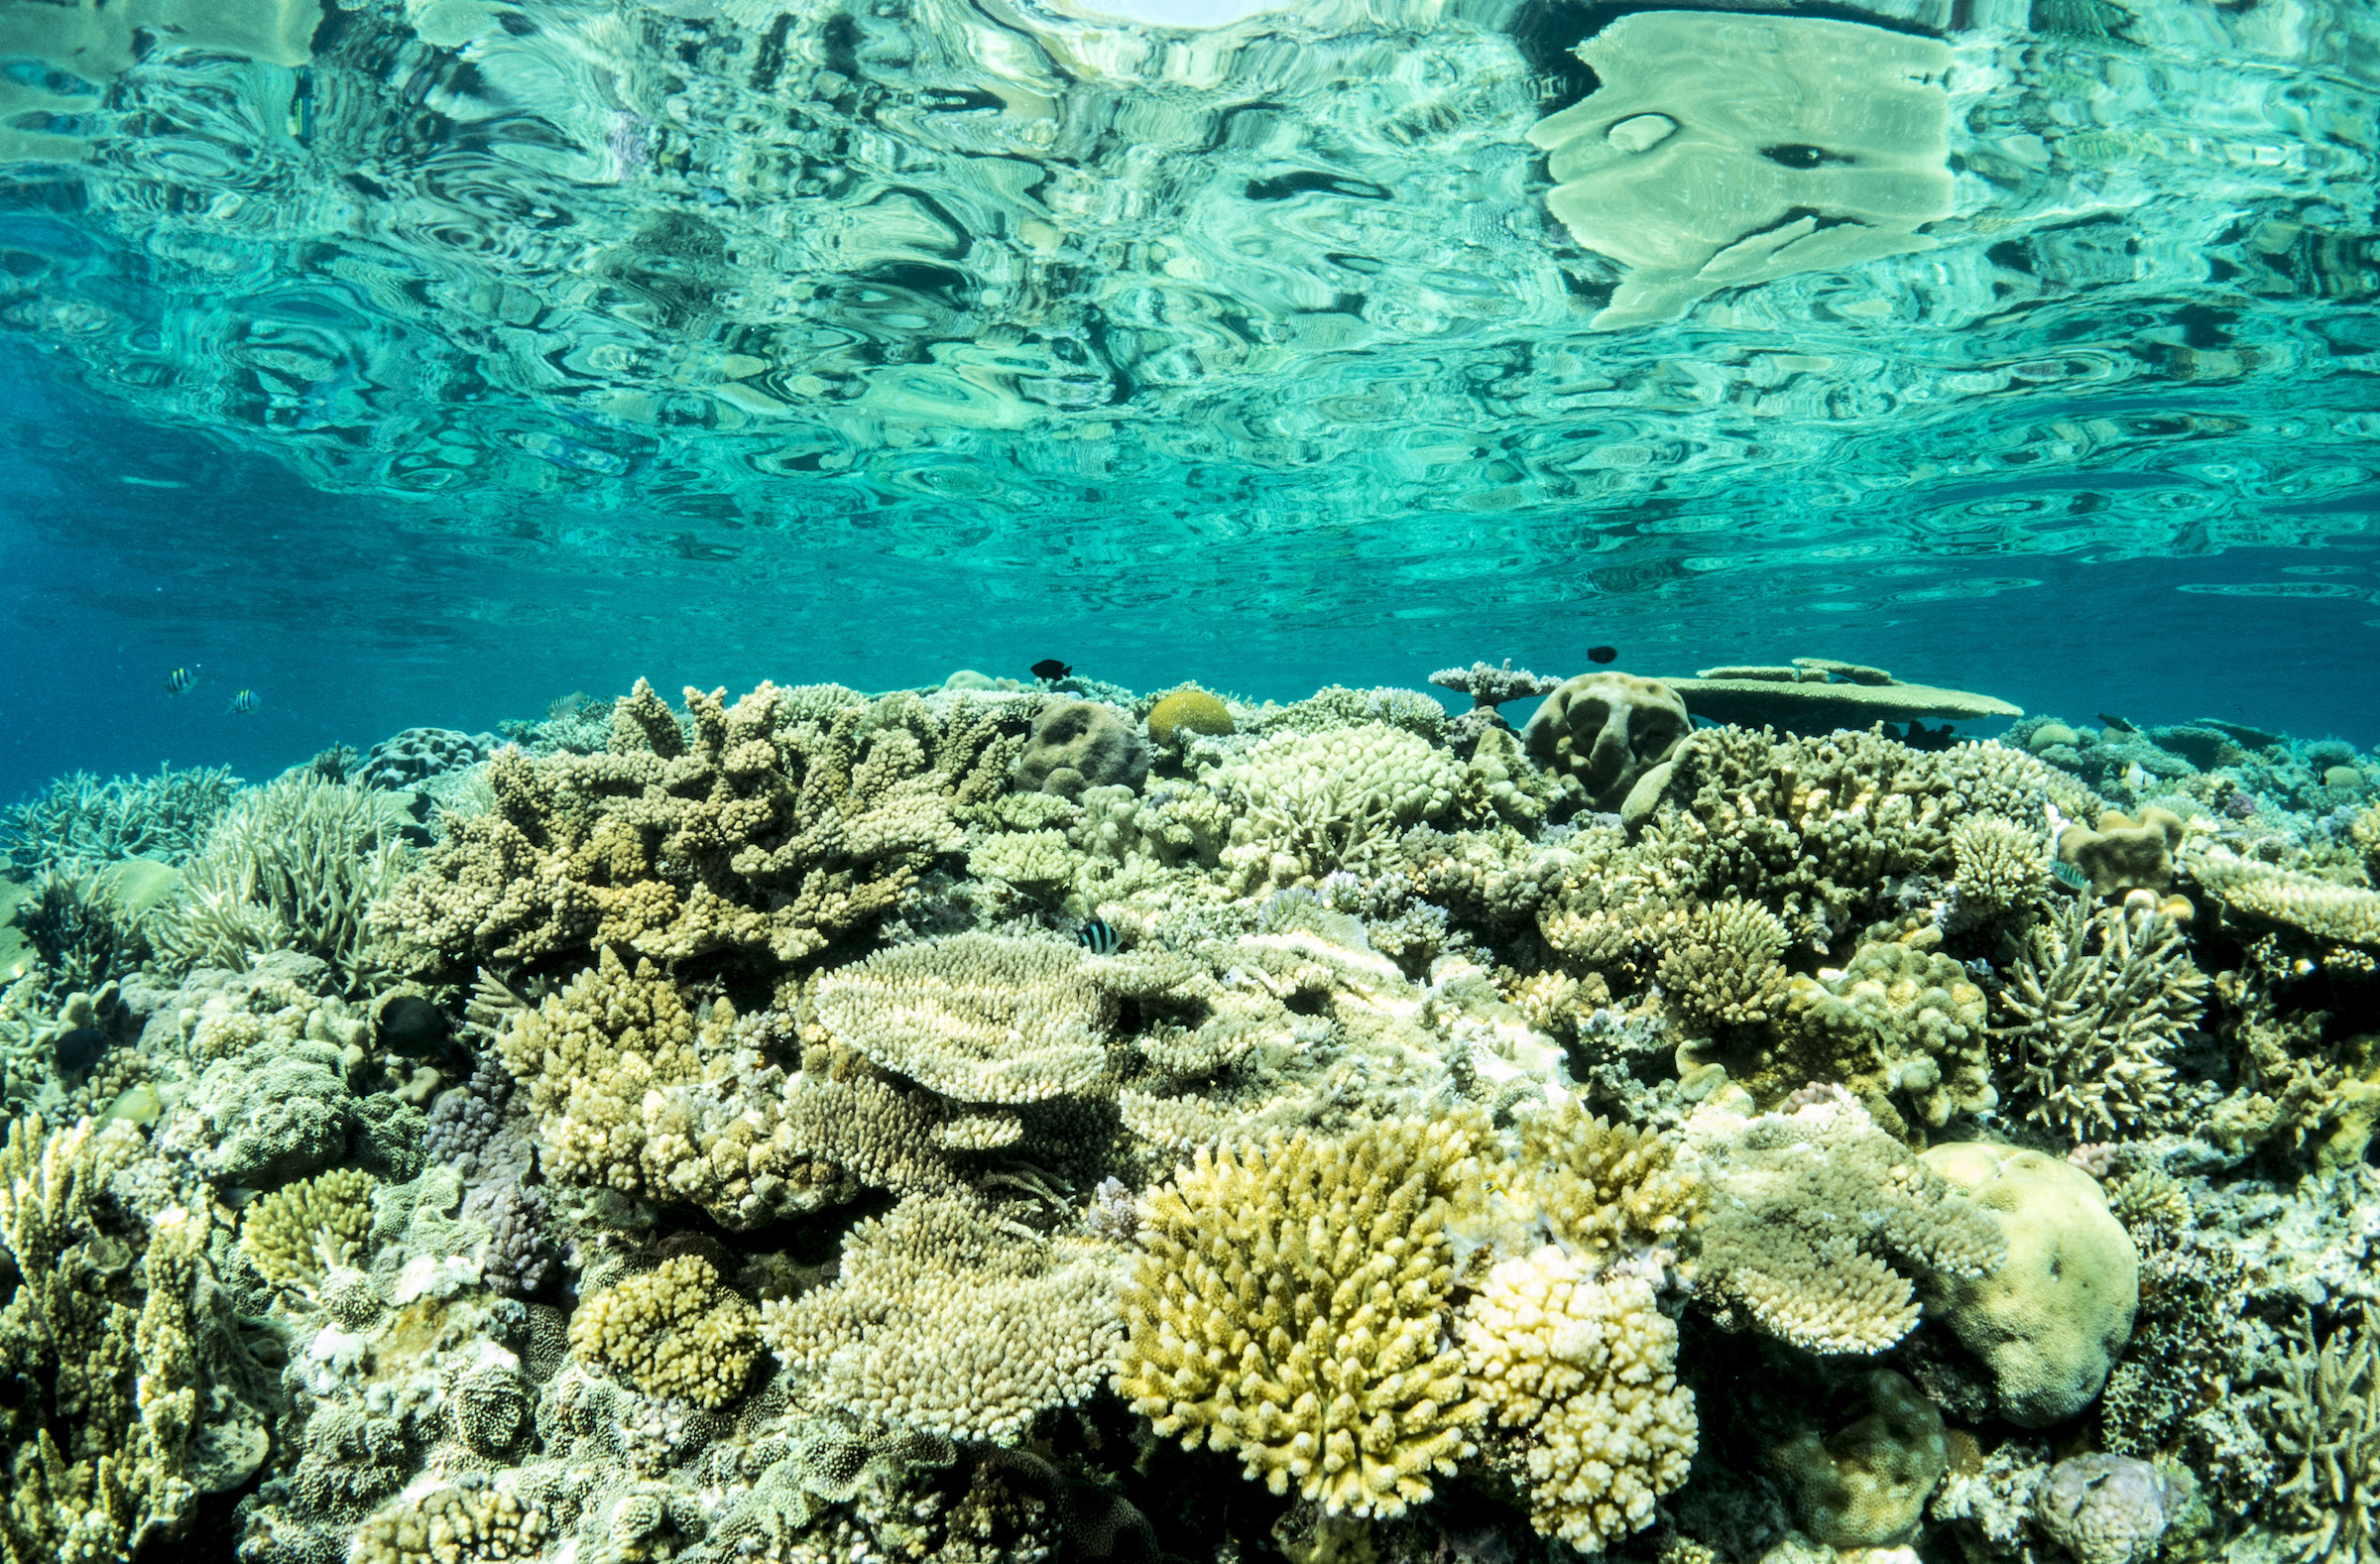 A new study has found that a small portion of the Great Barrier Reef could help boost widespread reef recovery and regeneration.